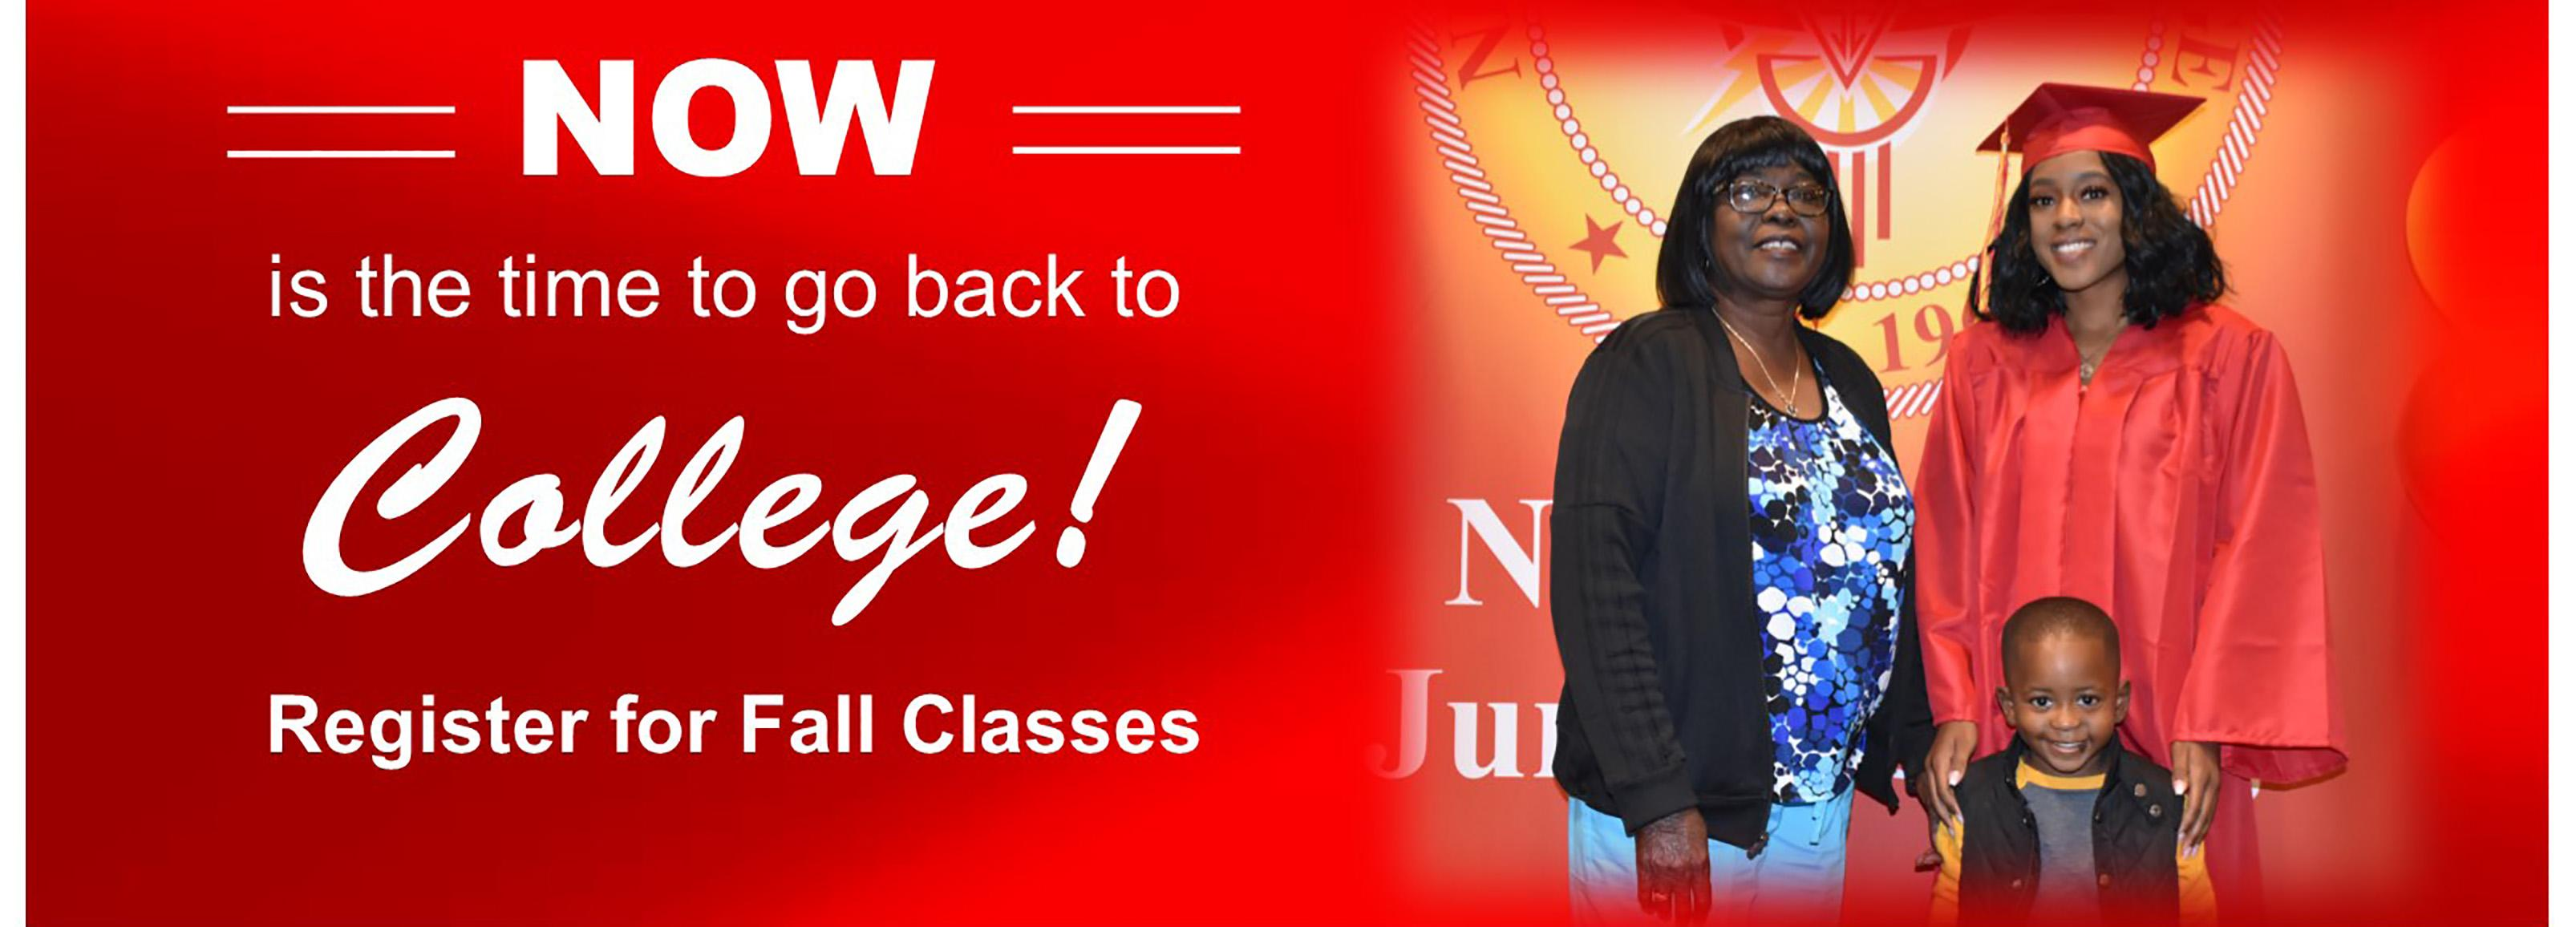 Fall Registration Going on Now